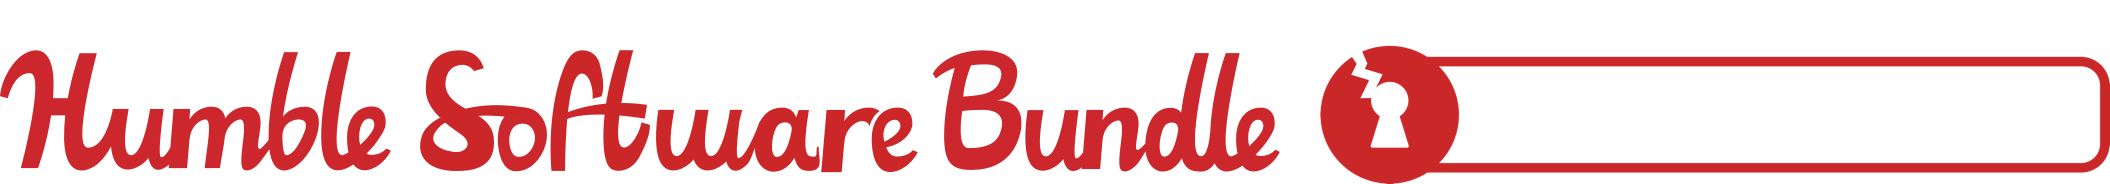 Humble Software Bundle: Cybersecurity